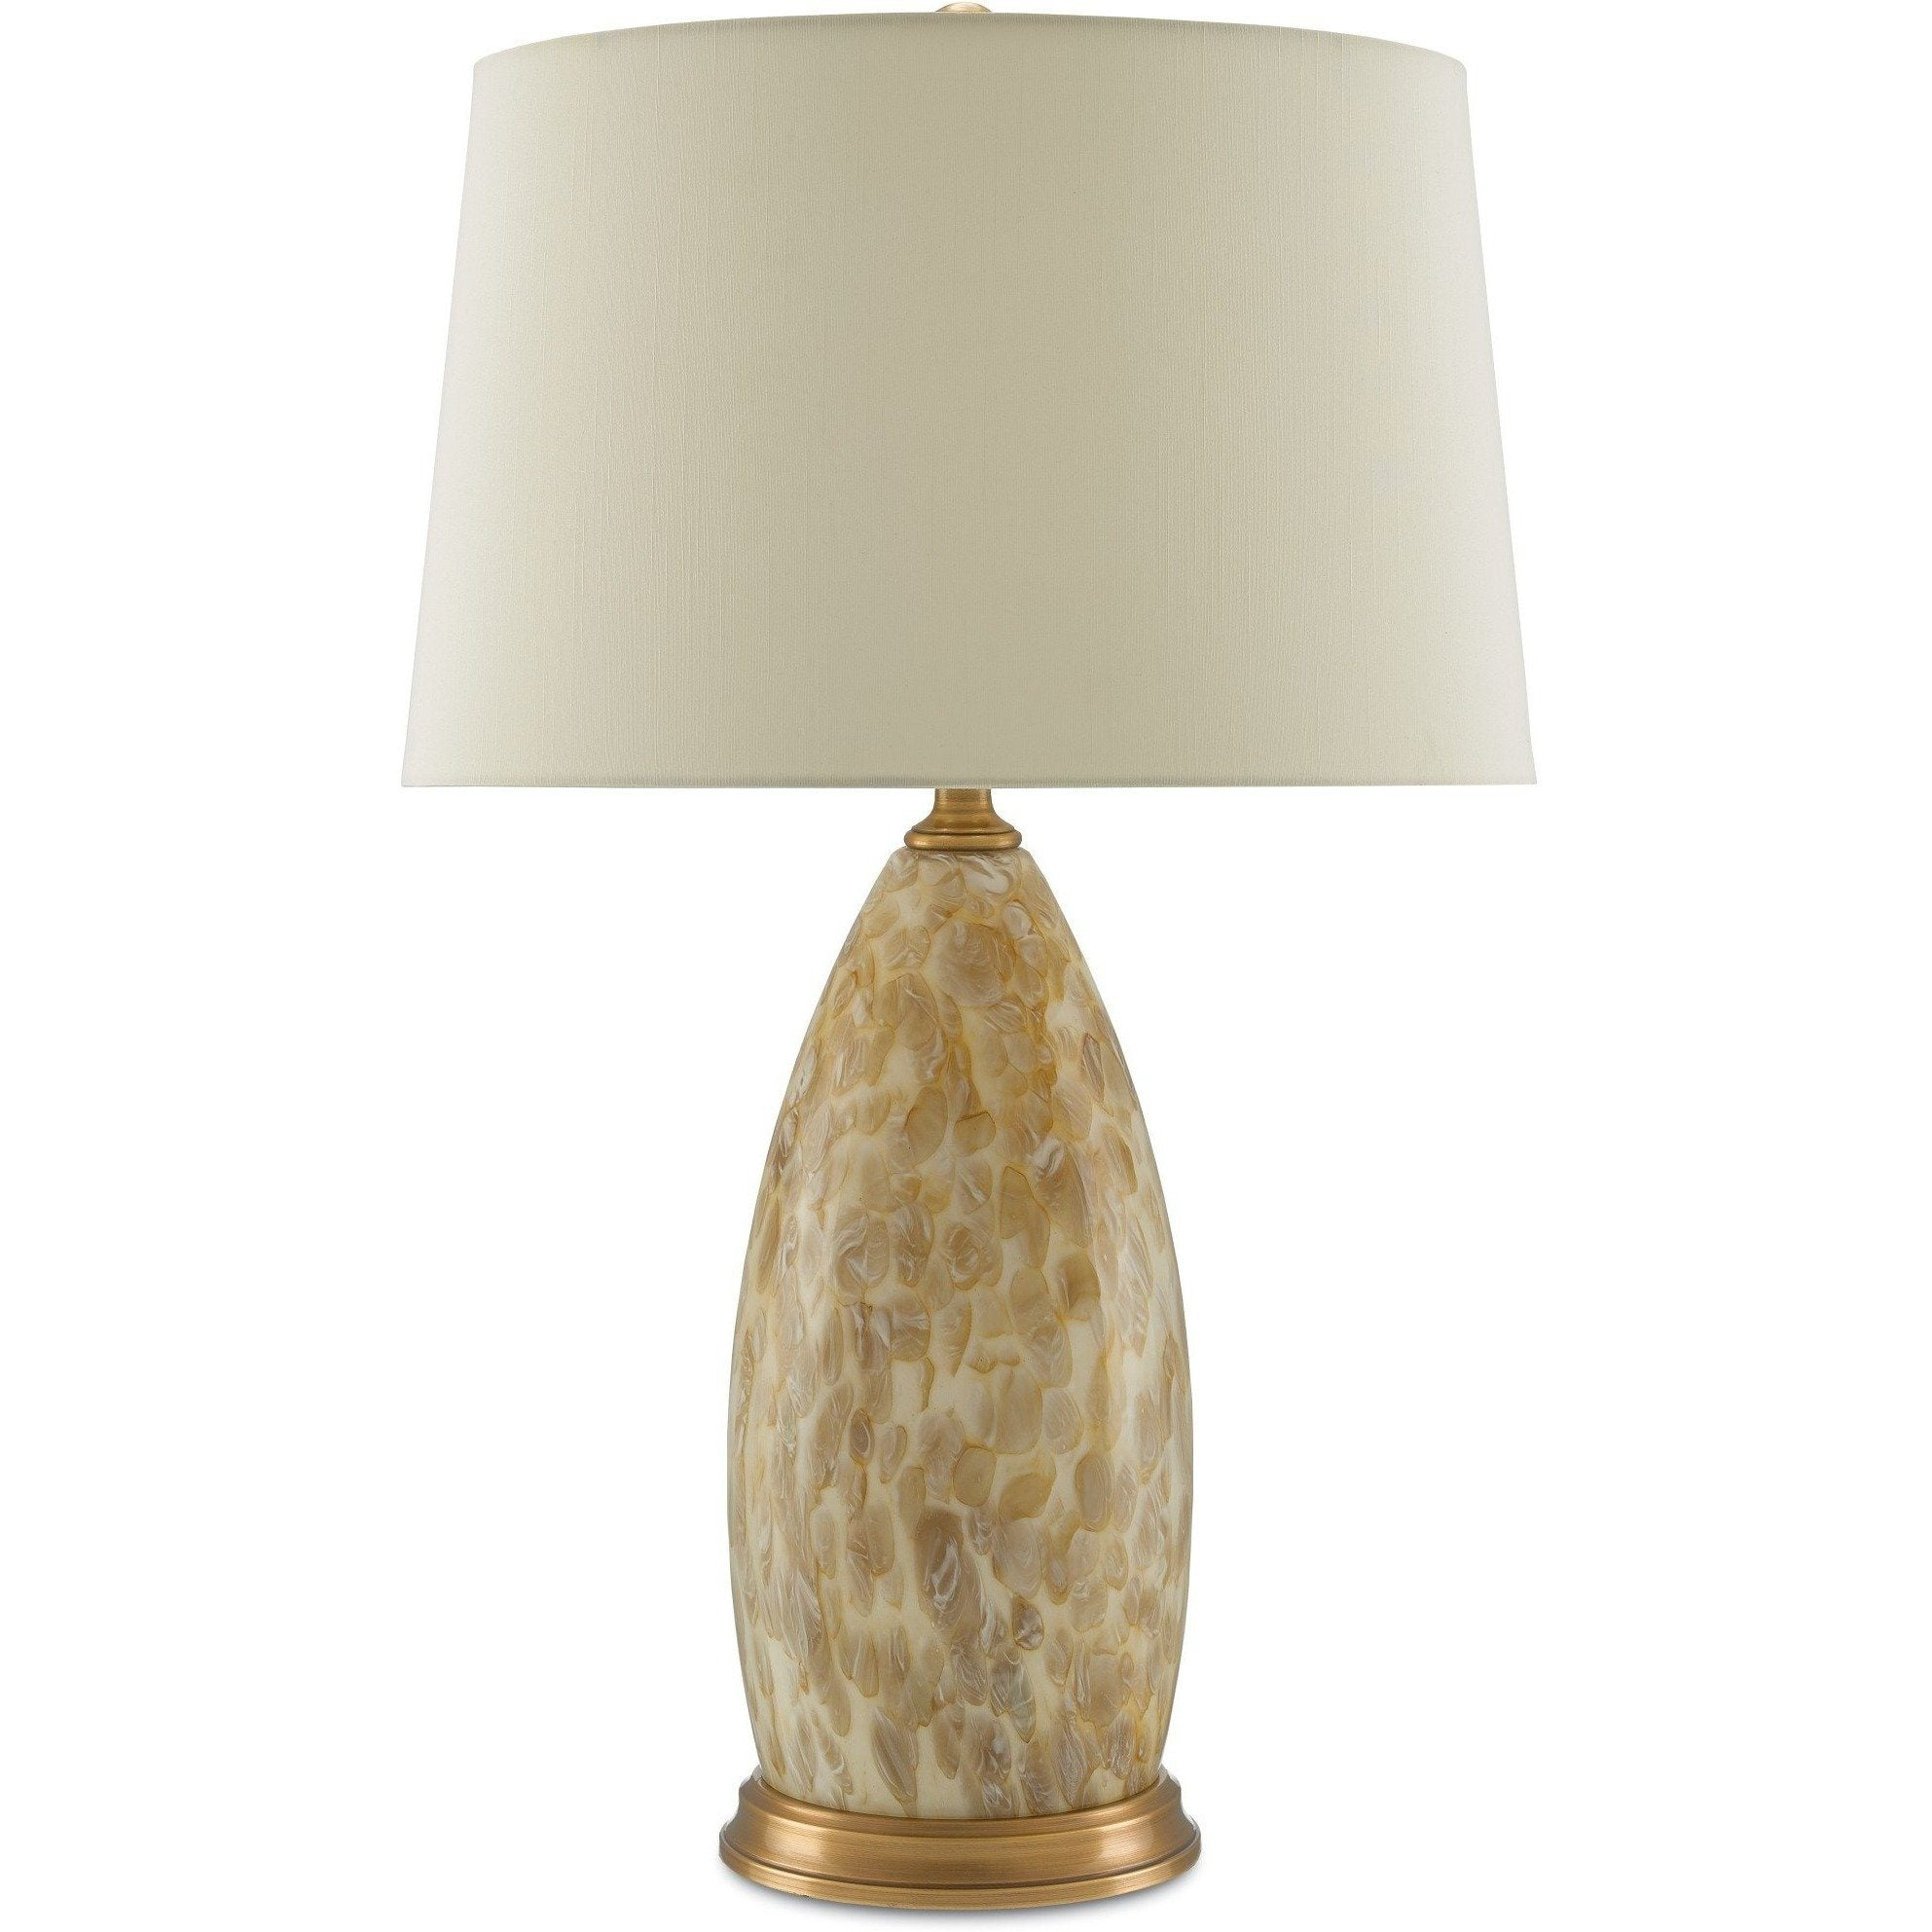 Currey and Company Dia Table Lamp 6000-0139 - LOVECUP